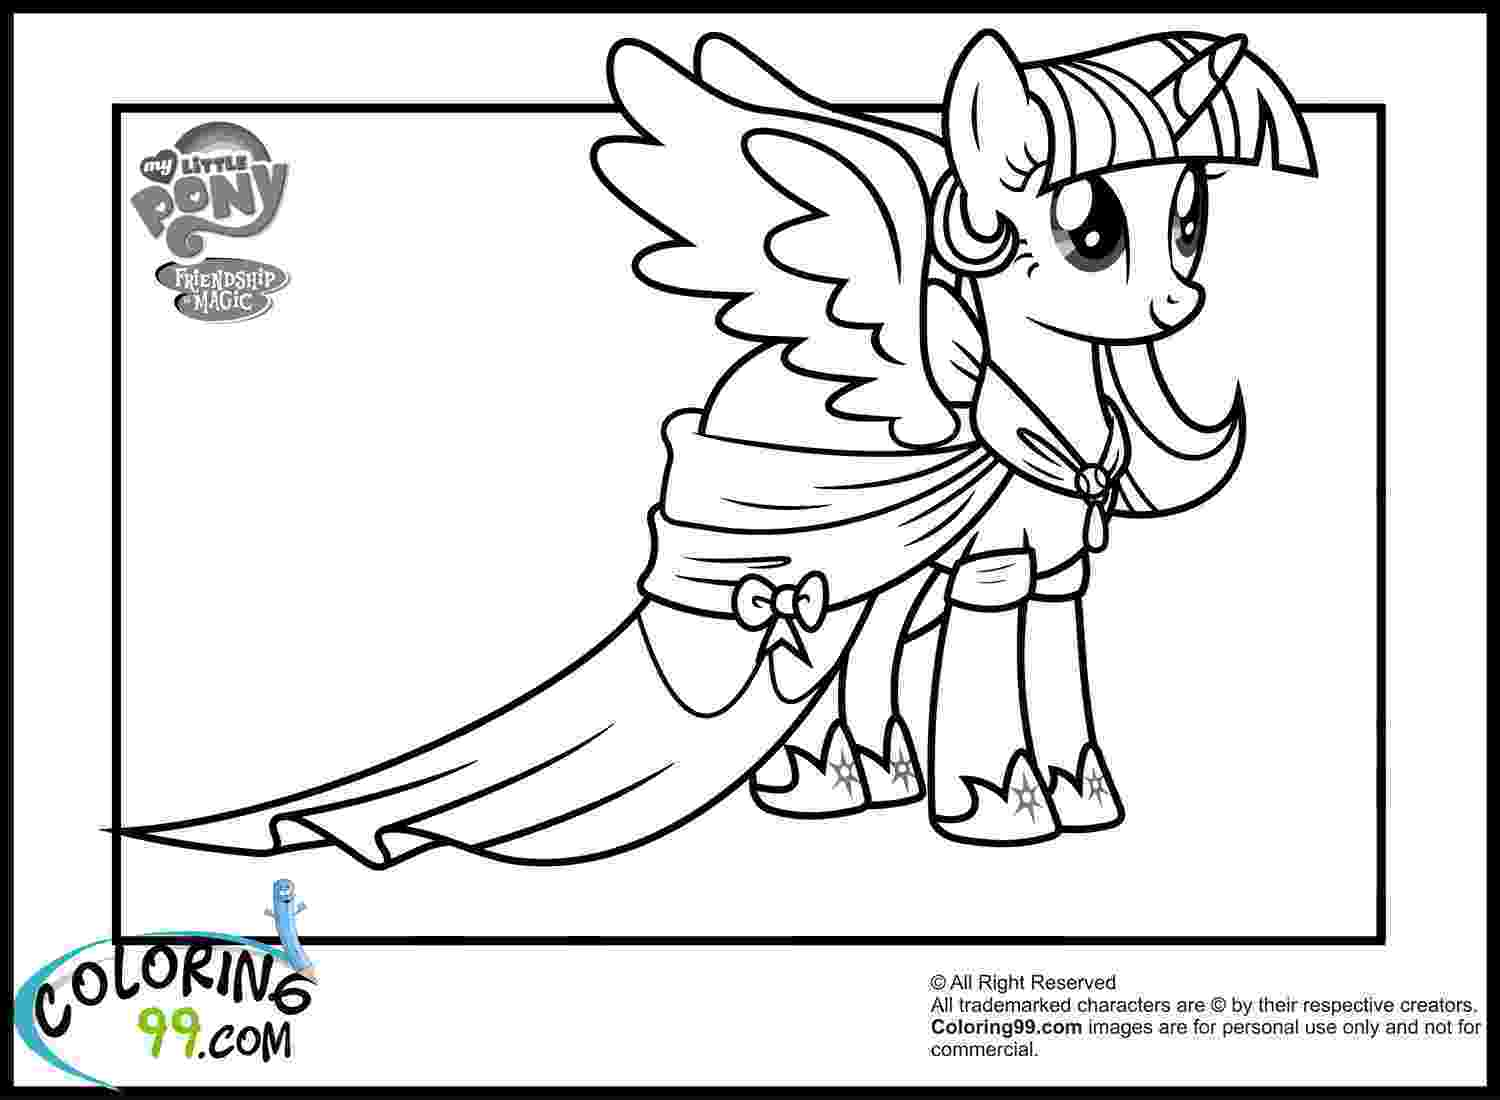 twilight sparkle colouring pages my little pony twilight sparkle coloring pages team colors sparkle colouring twilight pages